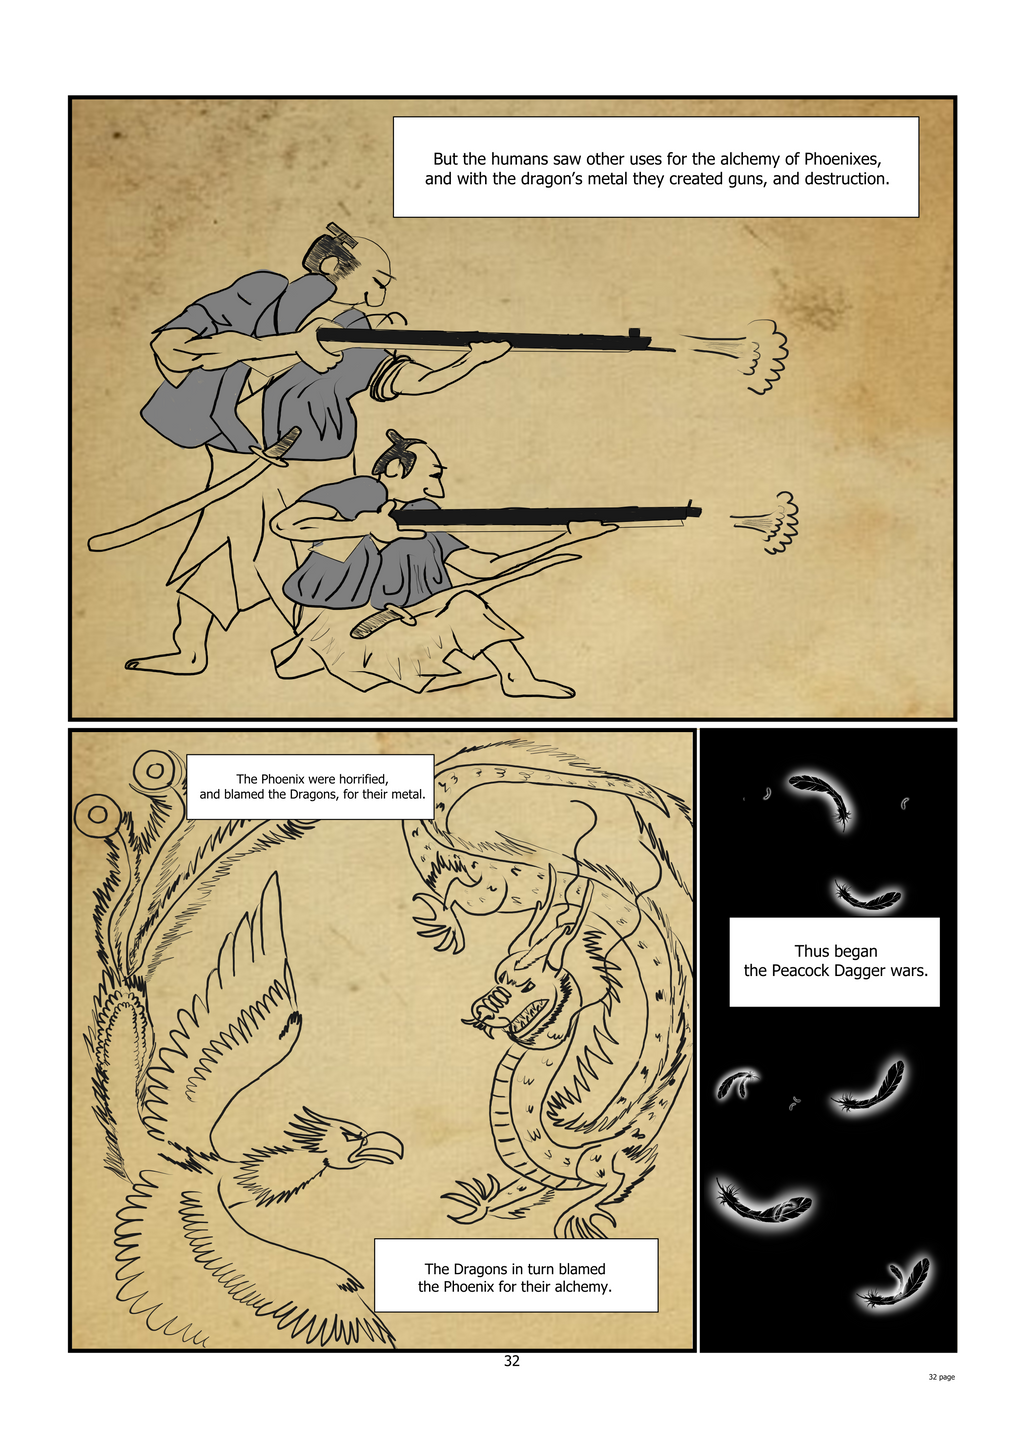 Dragons from the way Northern parts of China have small tusks like the one in this page.